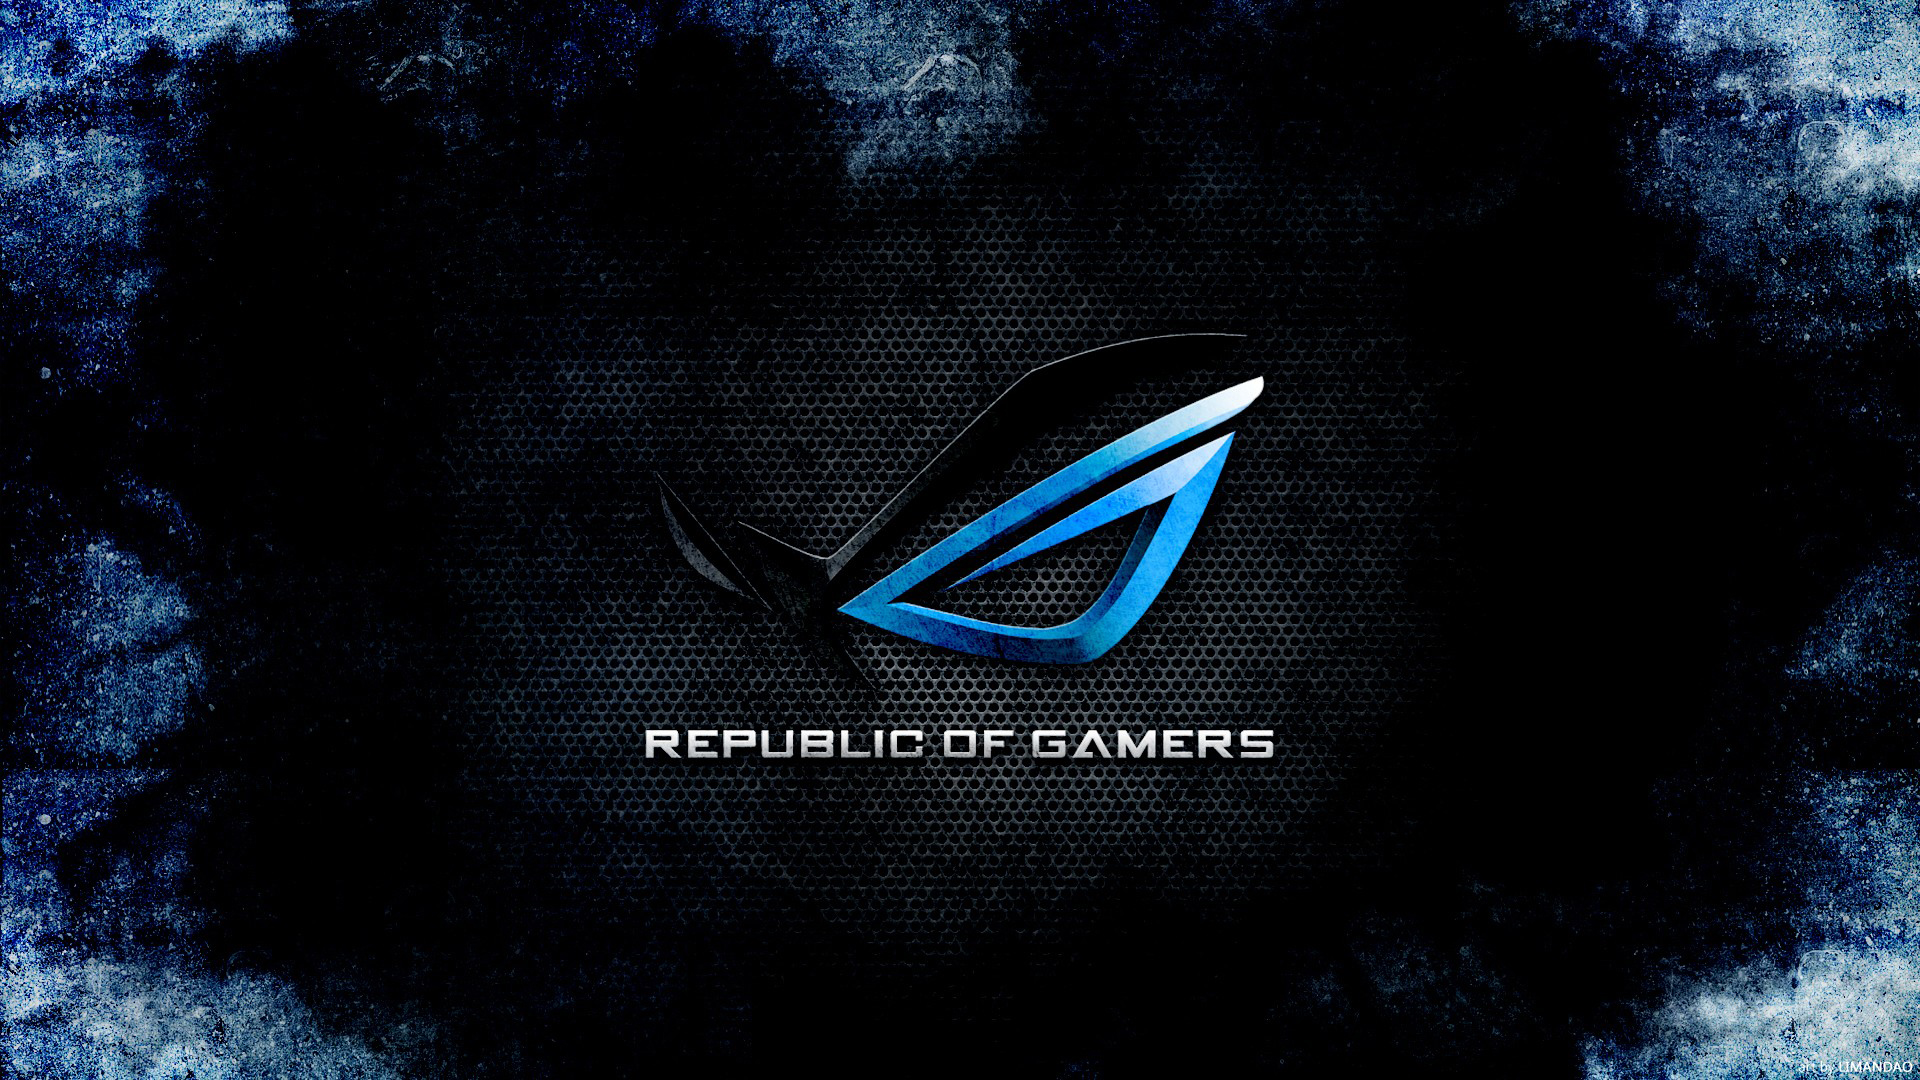 ROG Wallpaper Full HD  WallpaperSafari